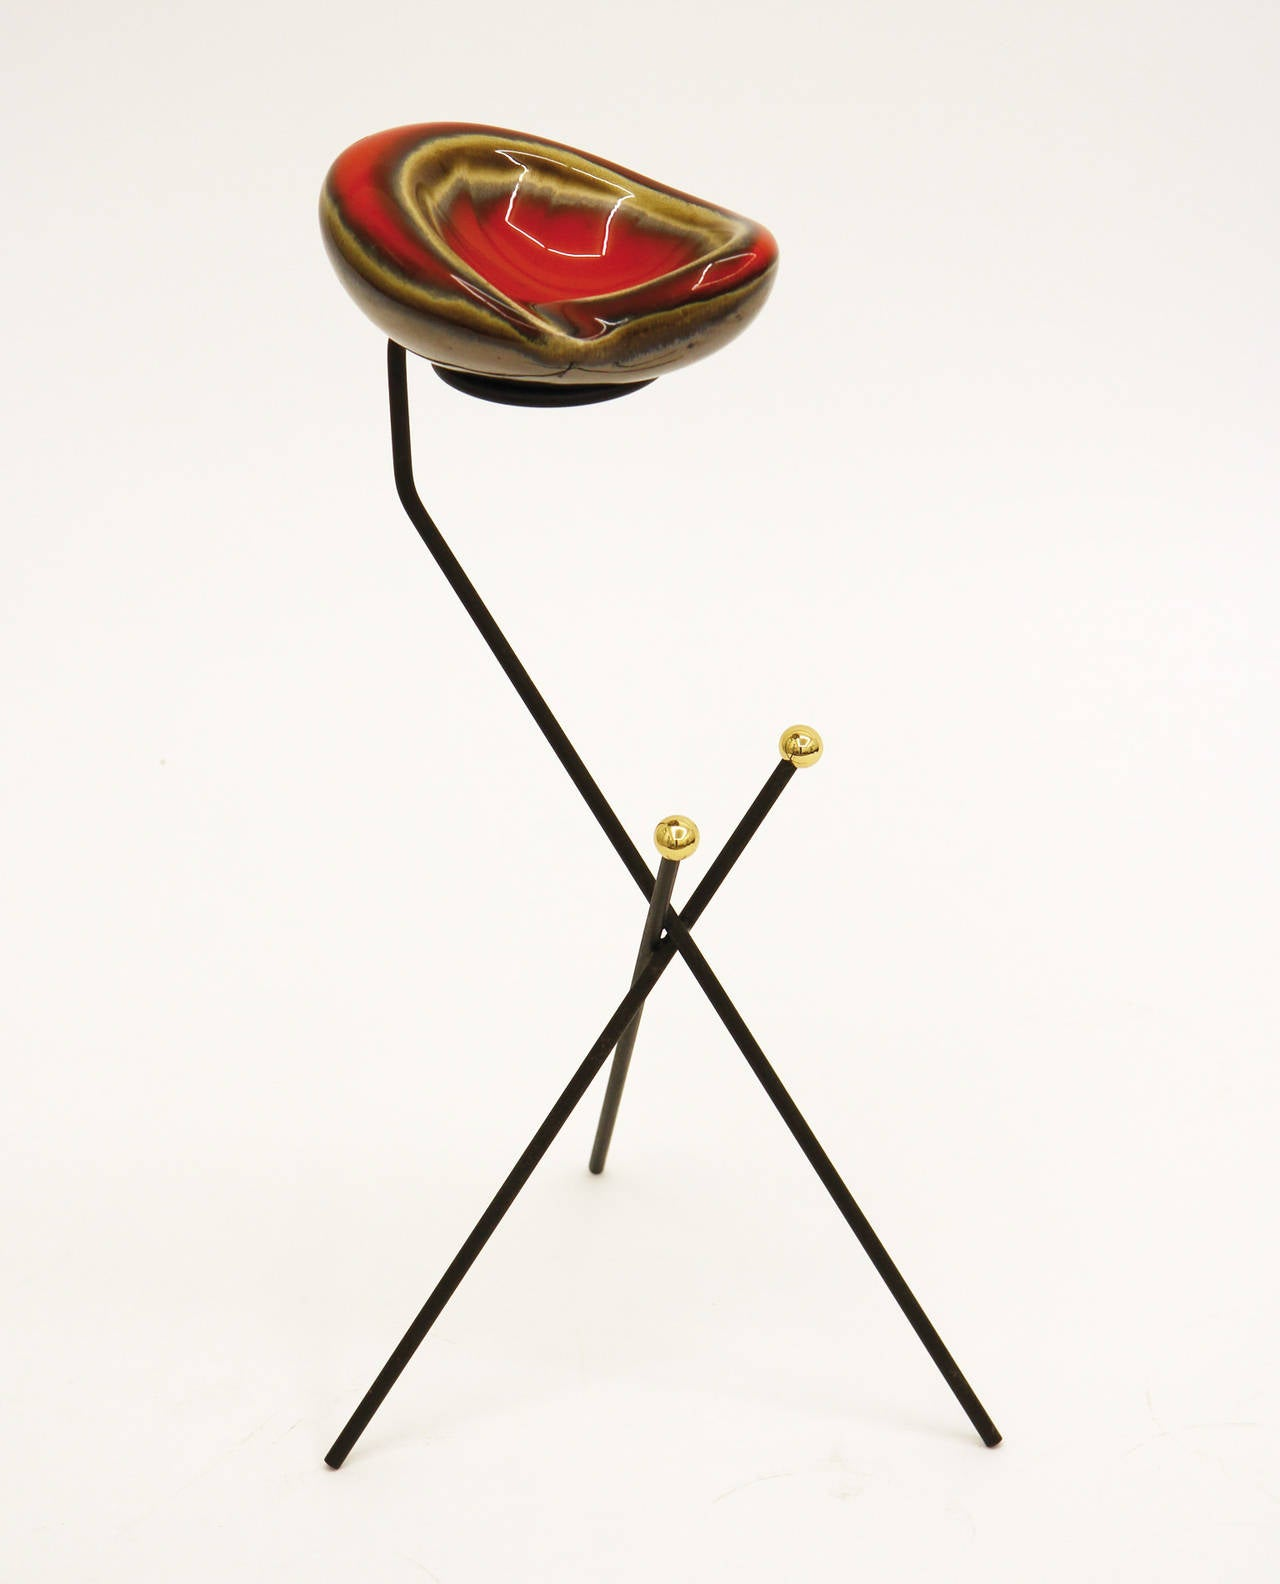 French Modernist Tripod Ashtray or Catch-All, 1950s For Sale 1